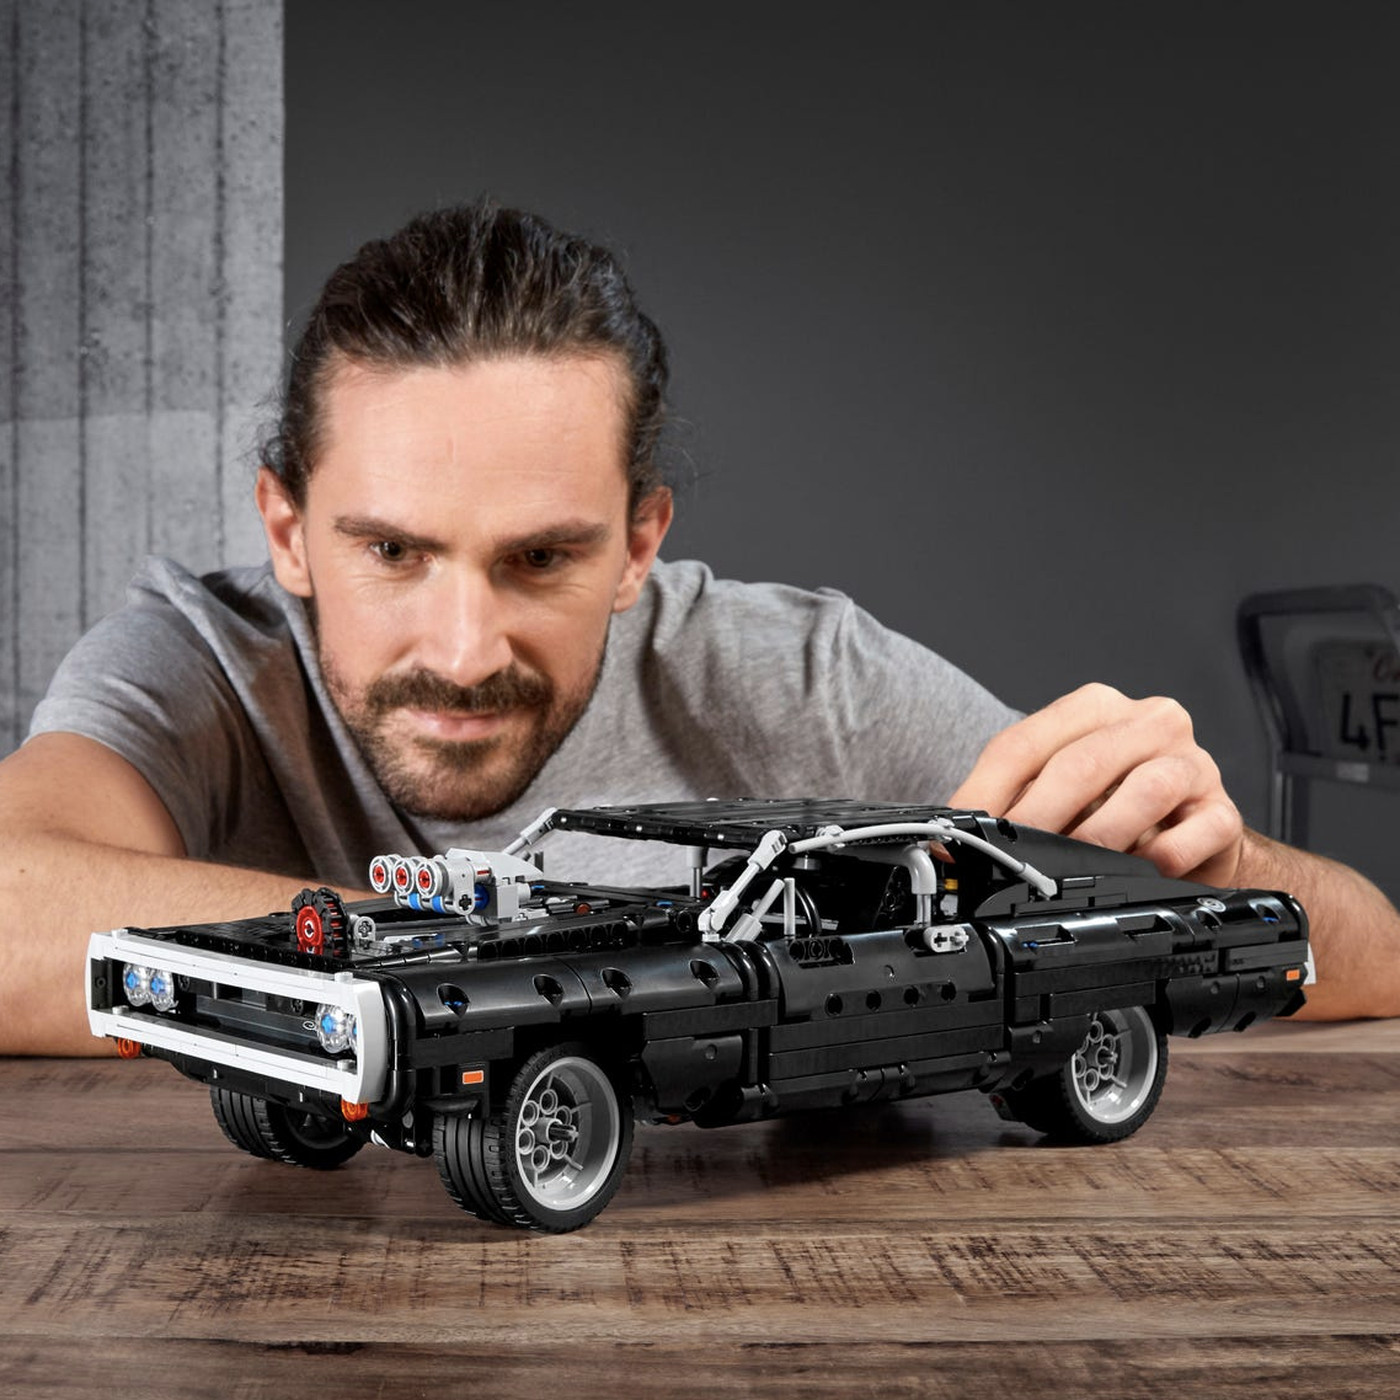 Dominic Toretto S 1970 Dodge Charger From The Fast And Furious Is Now A Lego Kit The Verge